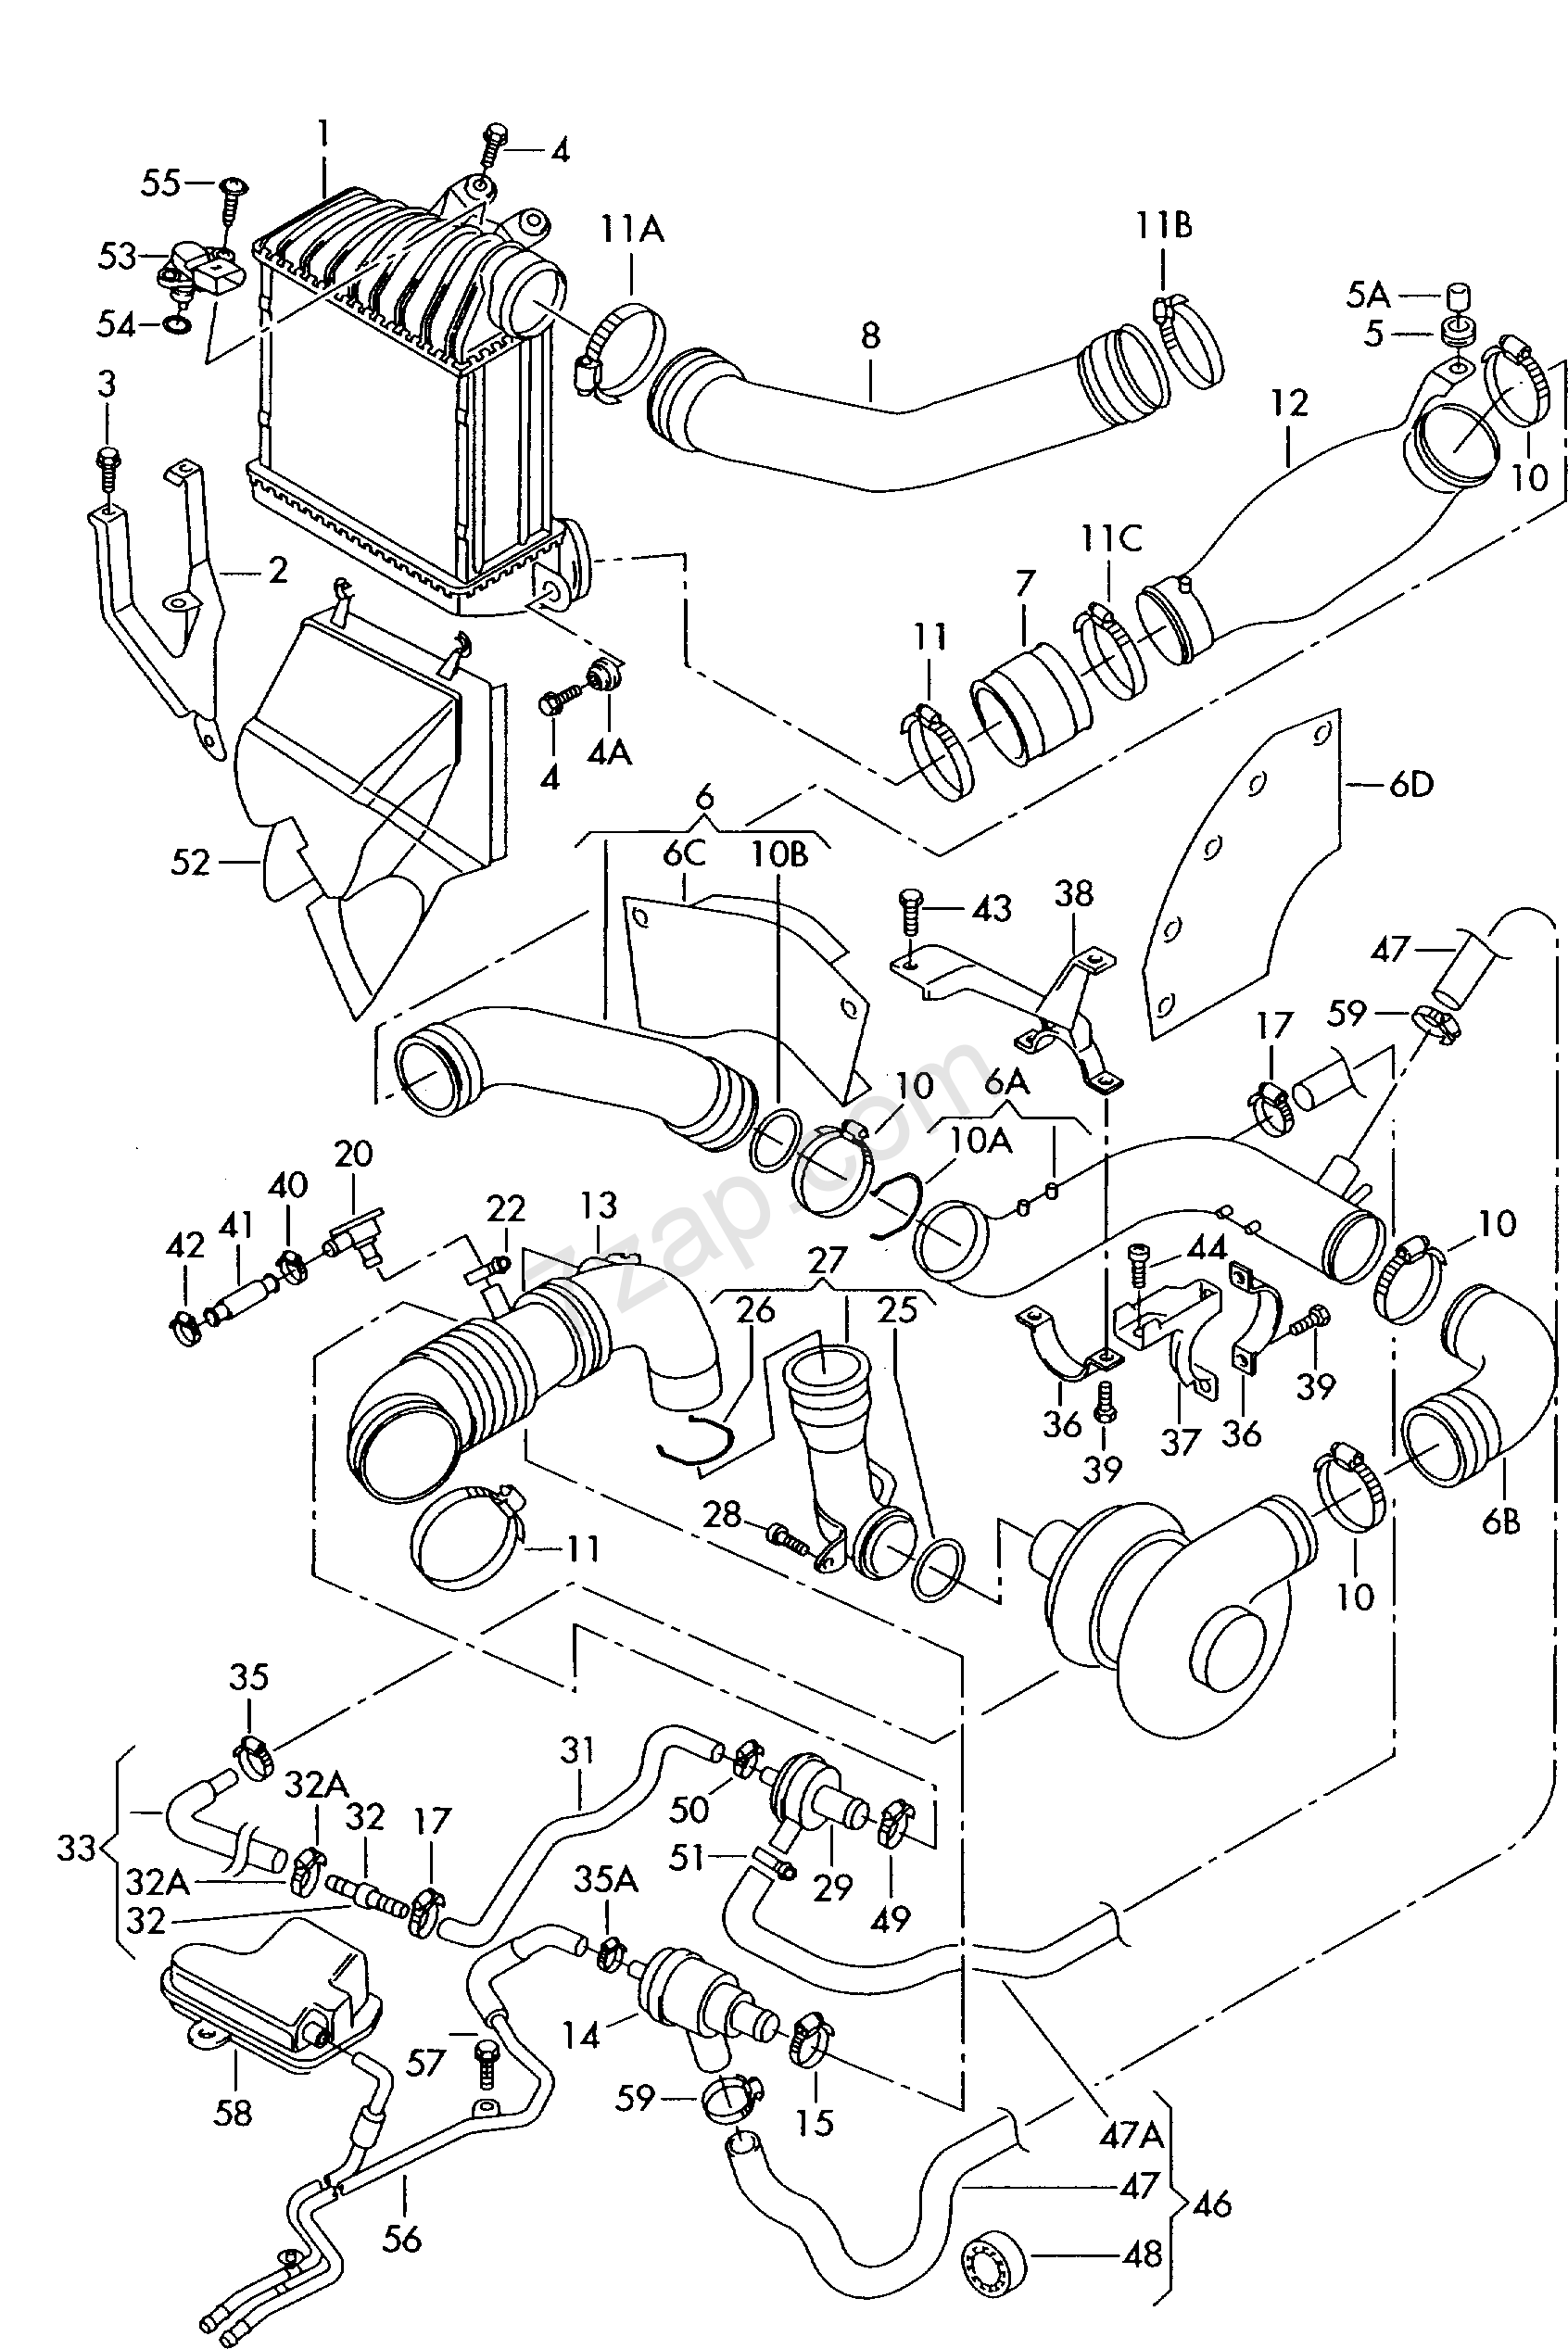 For A Vw Jettum Vr6 Wiring Diagram